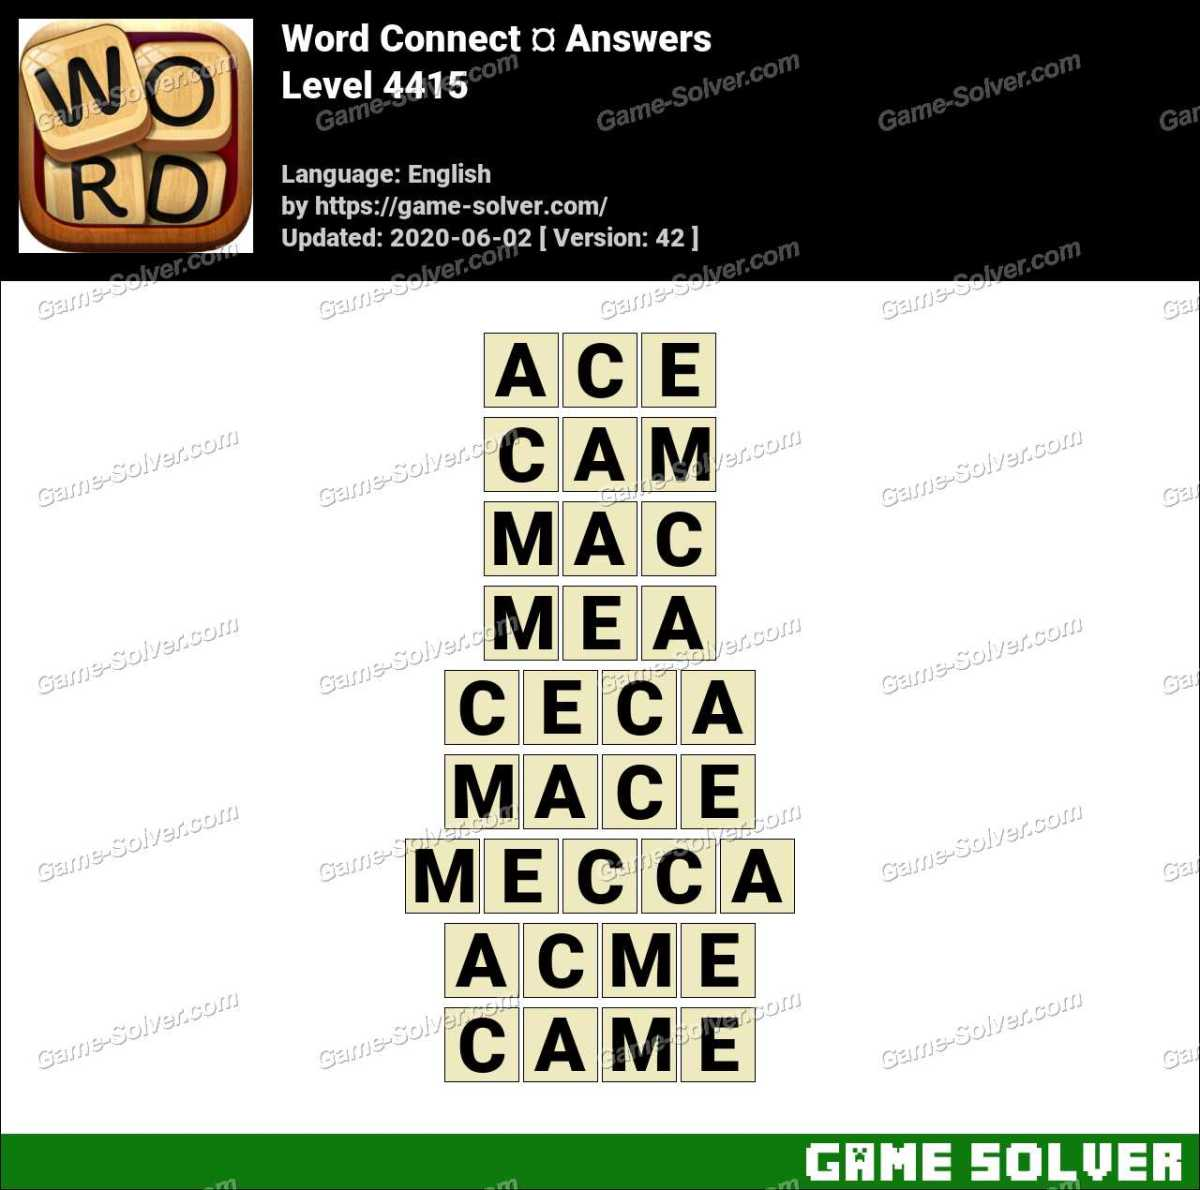 Word Connect Level 4415 Answers